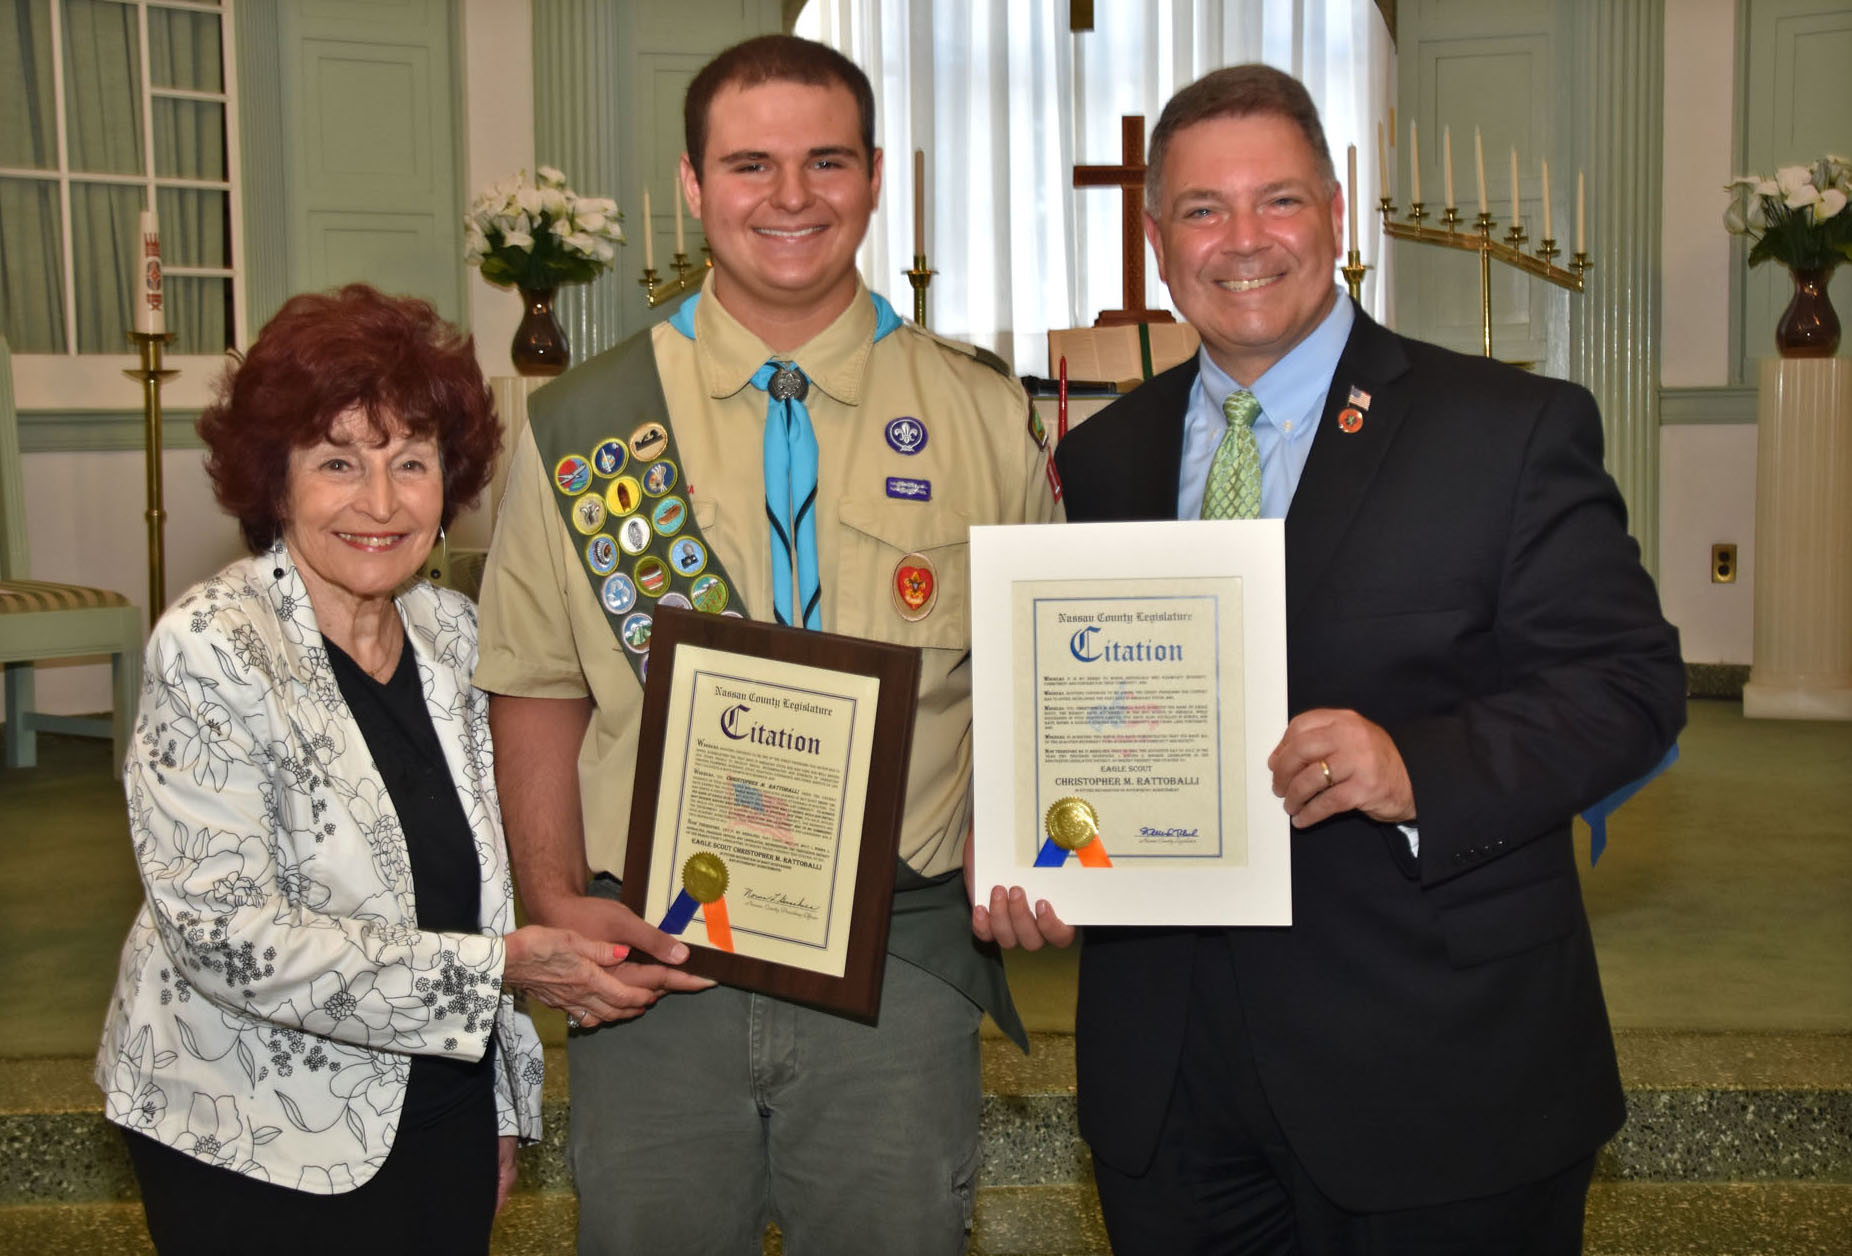 Christopher M. Rattoballi was presented with a citation at his Eagle Scout Court of Honor by Nassau County Legislature Presiding Officer Norma Gonsalves and Legislator Steve Rhoads.